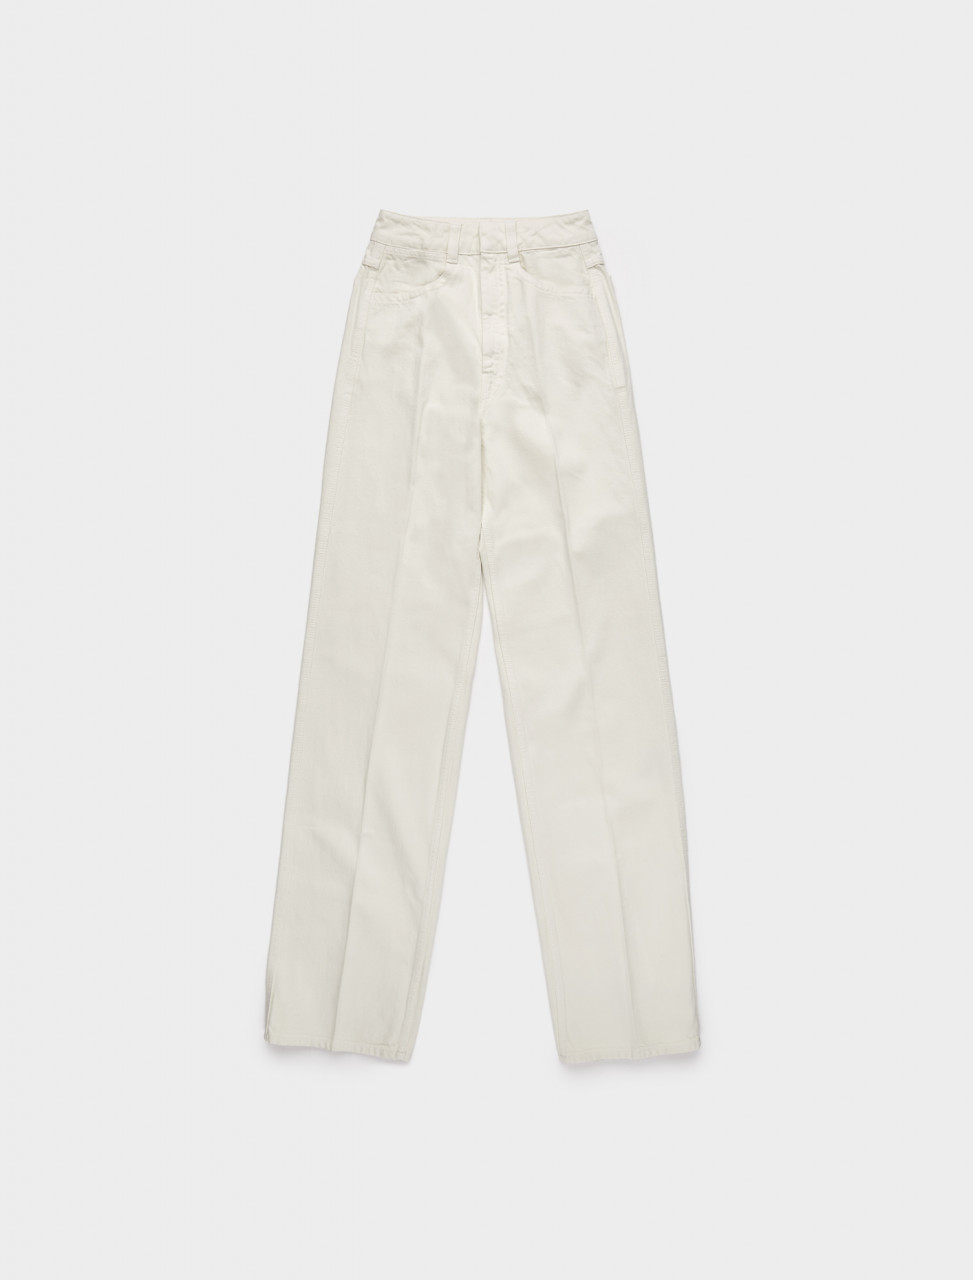 218-W-203-PA258-LD034-003 LEMAIRE JEANS BONE WHITE